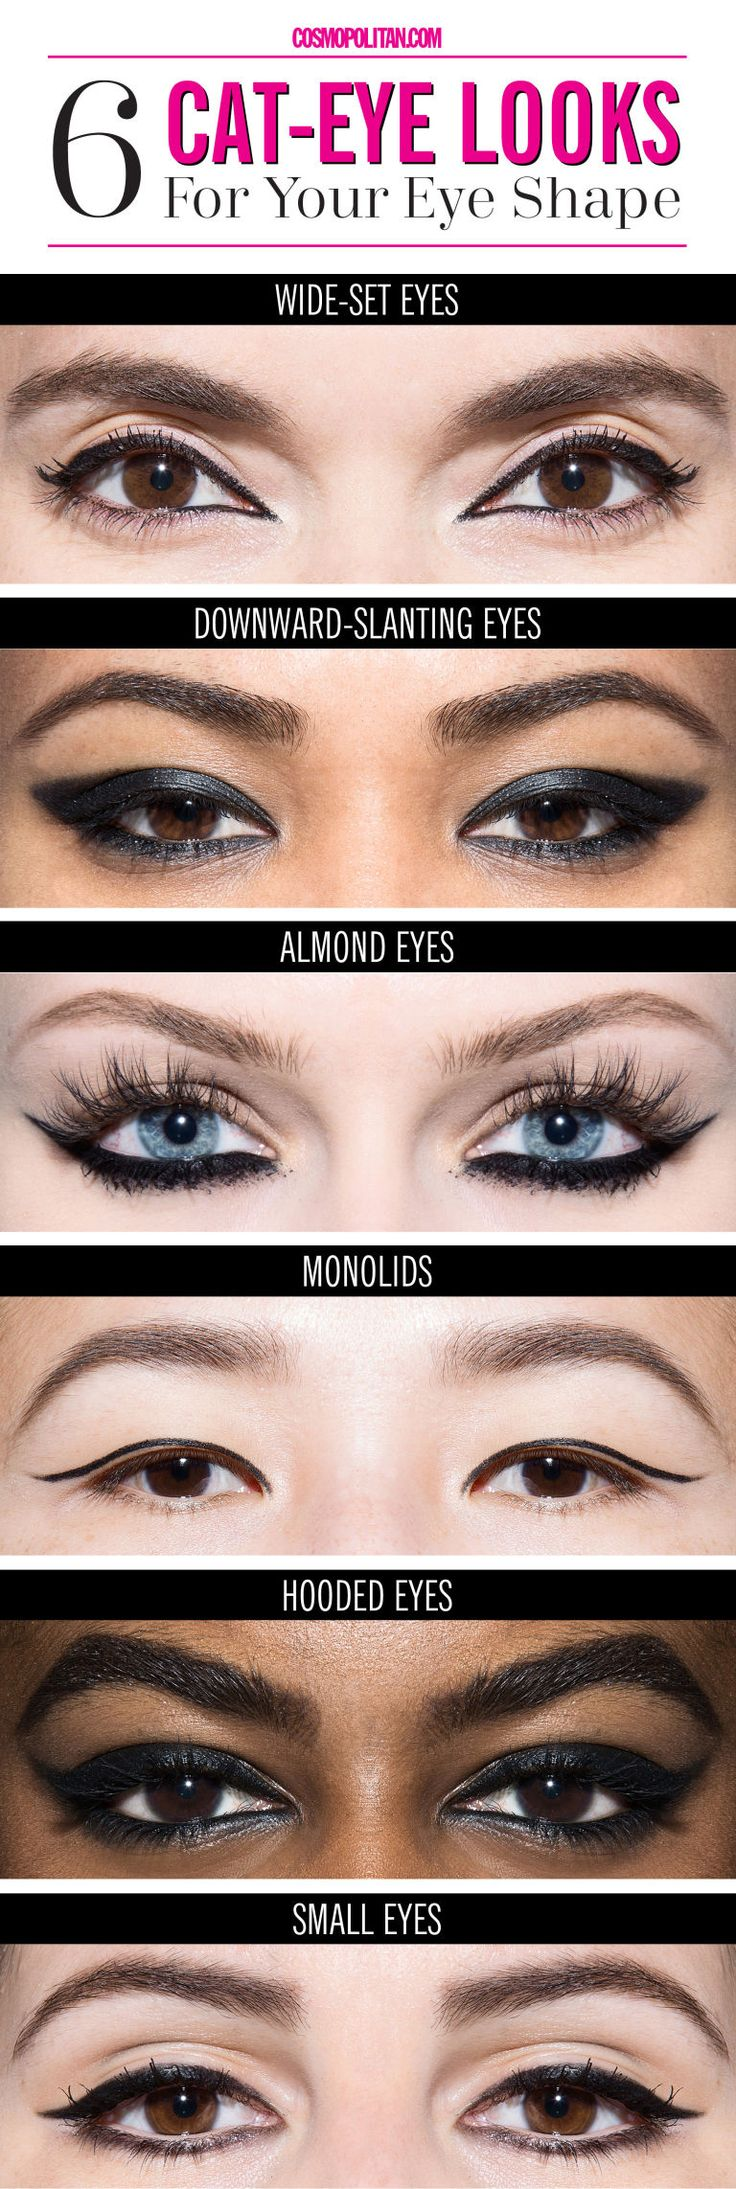 25+ Best Ideas About How To Do Eyeliner On Pinterest  How To Do Eyebrows,  Cat Eye Makeup Tutorial And How To Eyeliner